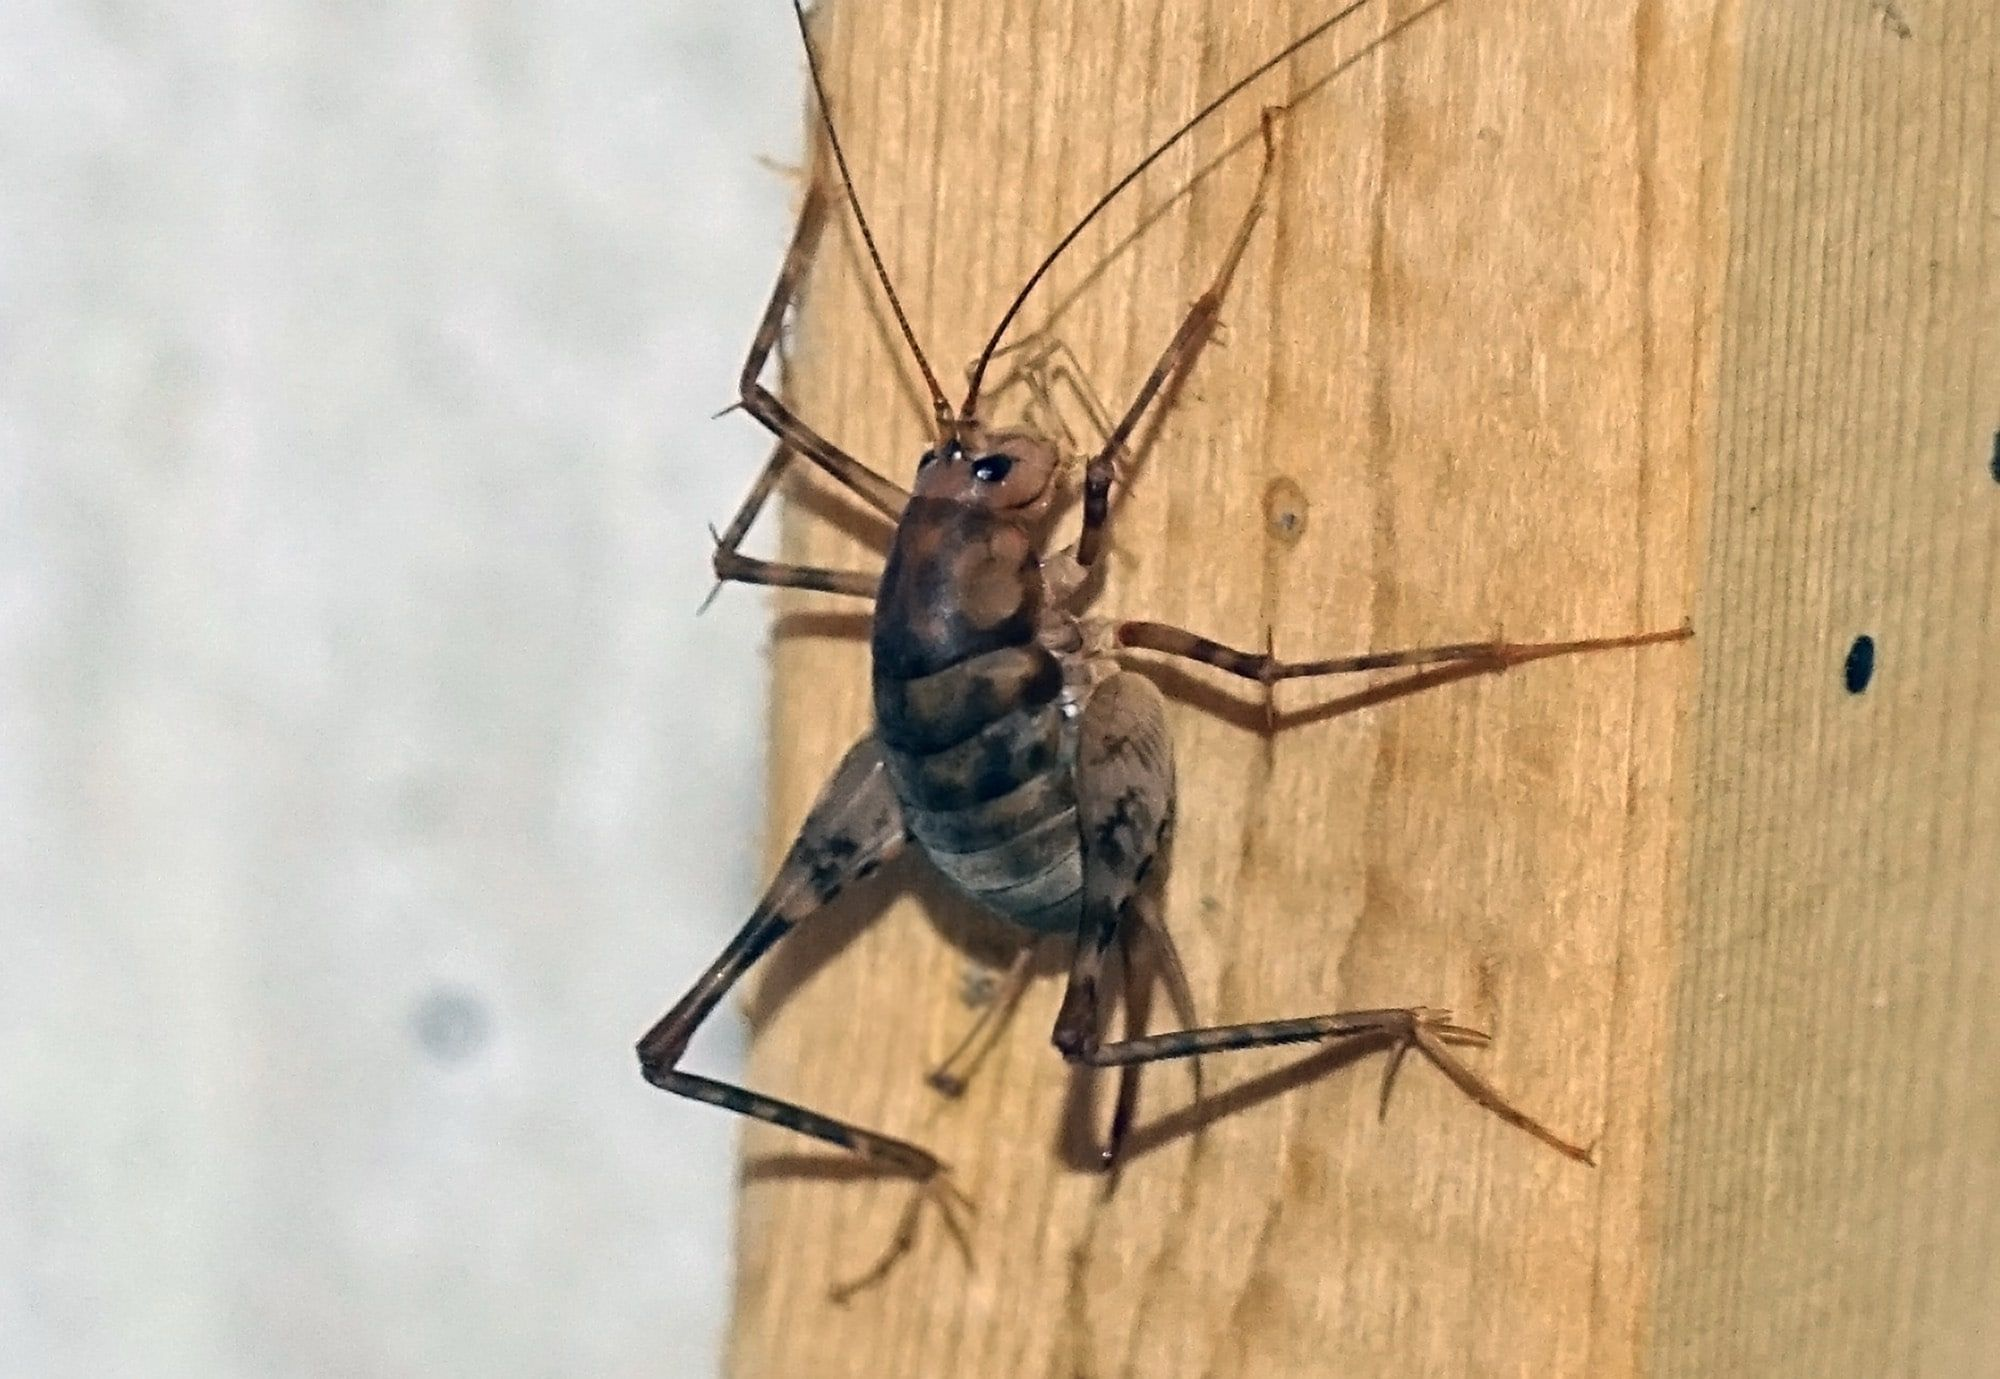 Spider Crickets The Bugs You Don T Want In Your House This Fall Spider Bugs Cricket